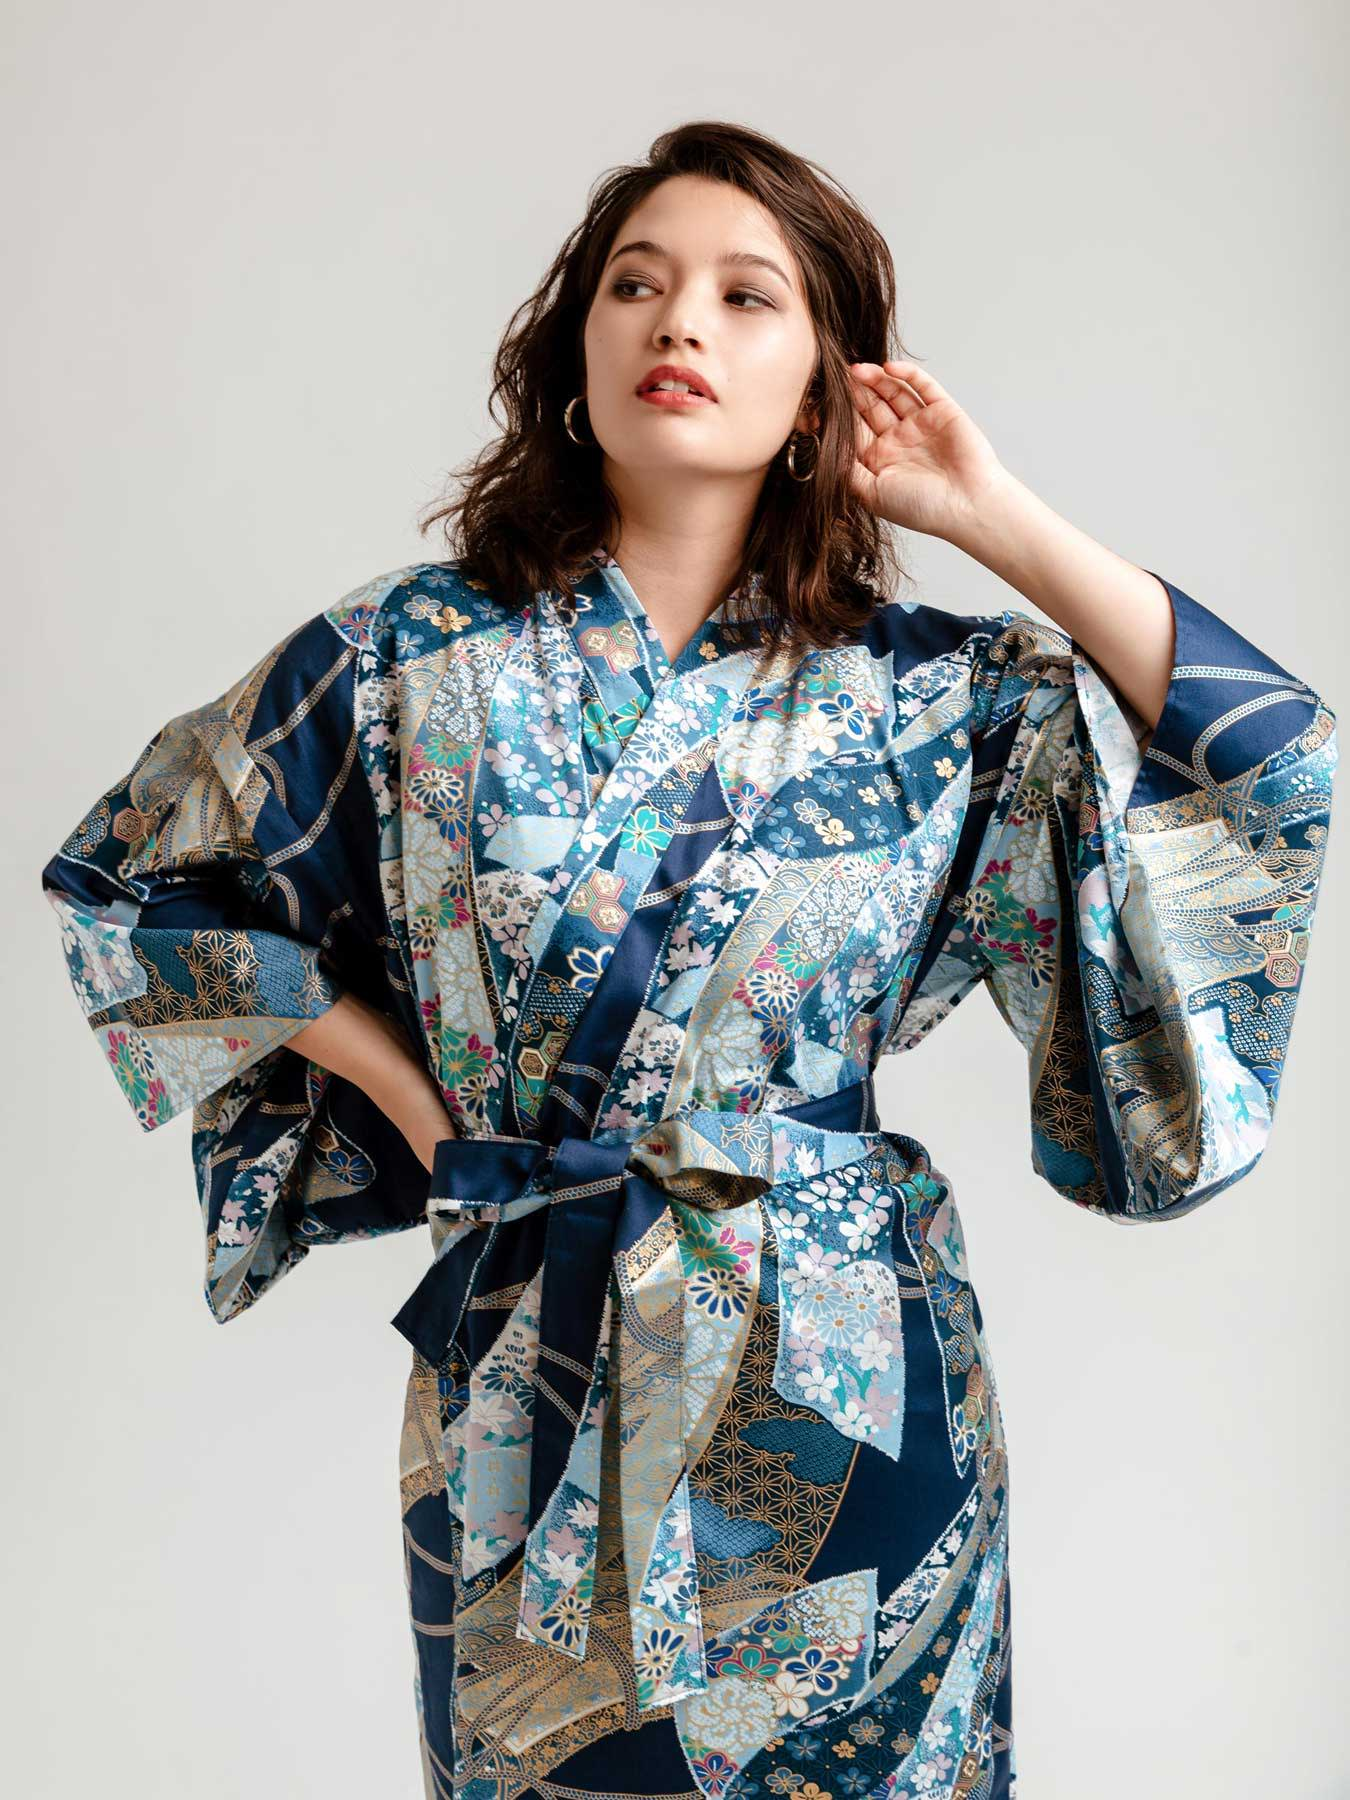 Wood Block print fabric Soft and comfortable night robes Cotton wrap dress Cotton kimono Robes for women Dressing gown for women